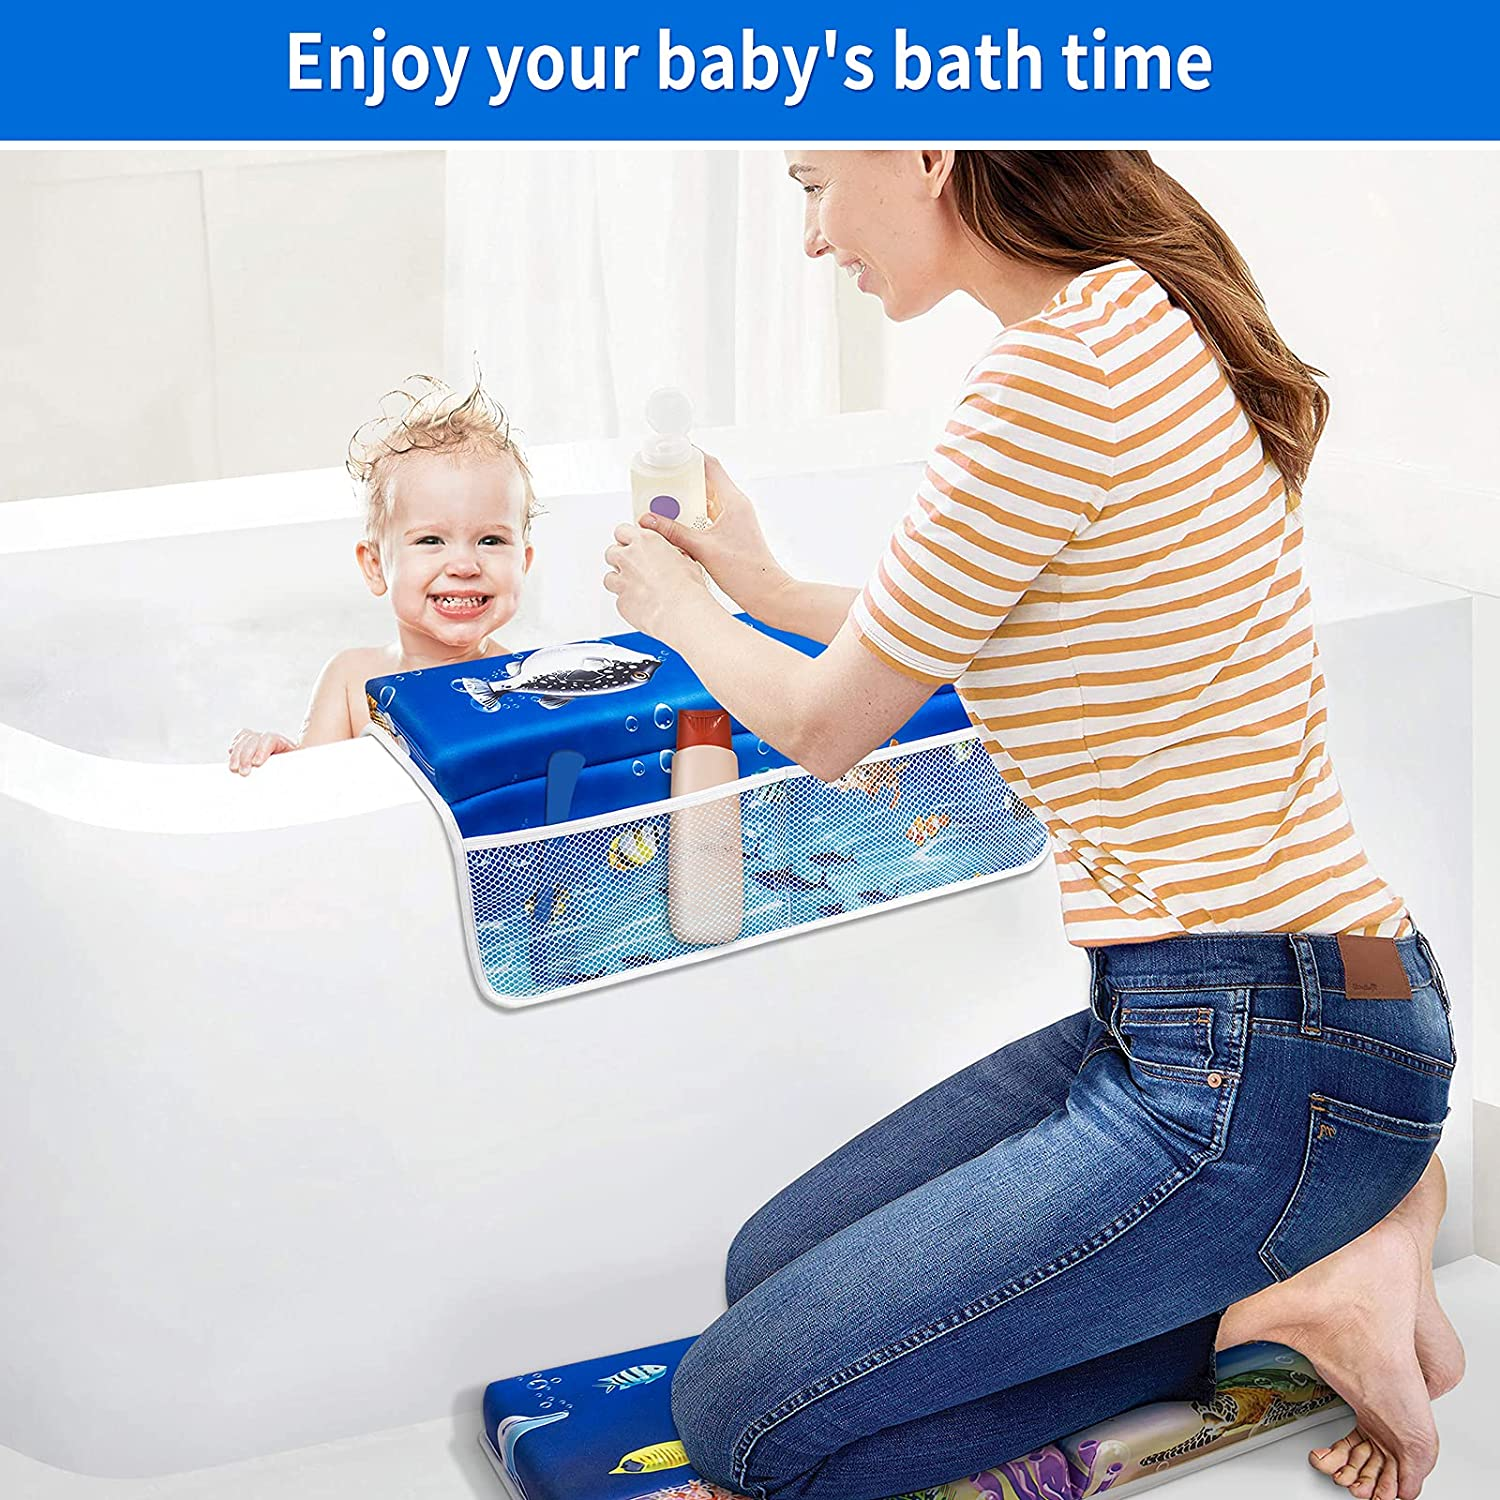 Bath Kneeler and Elbow Rest Pad Set, Bligli 1.5 inch Thick Kneeling Pad for Baby Bathtub-Arm Support Cushion with Toy Organizer for Happy Baby Bathing Time, Machine Washable | Cute Pattern